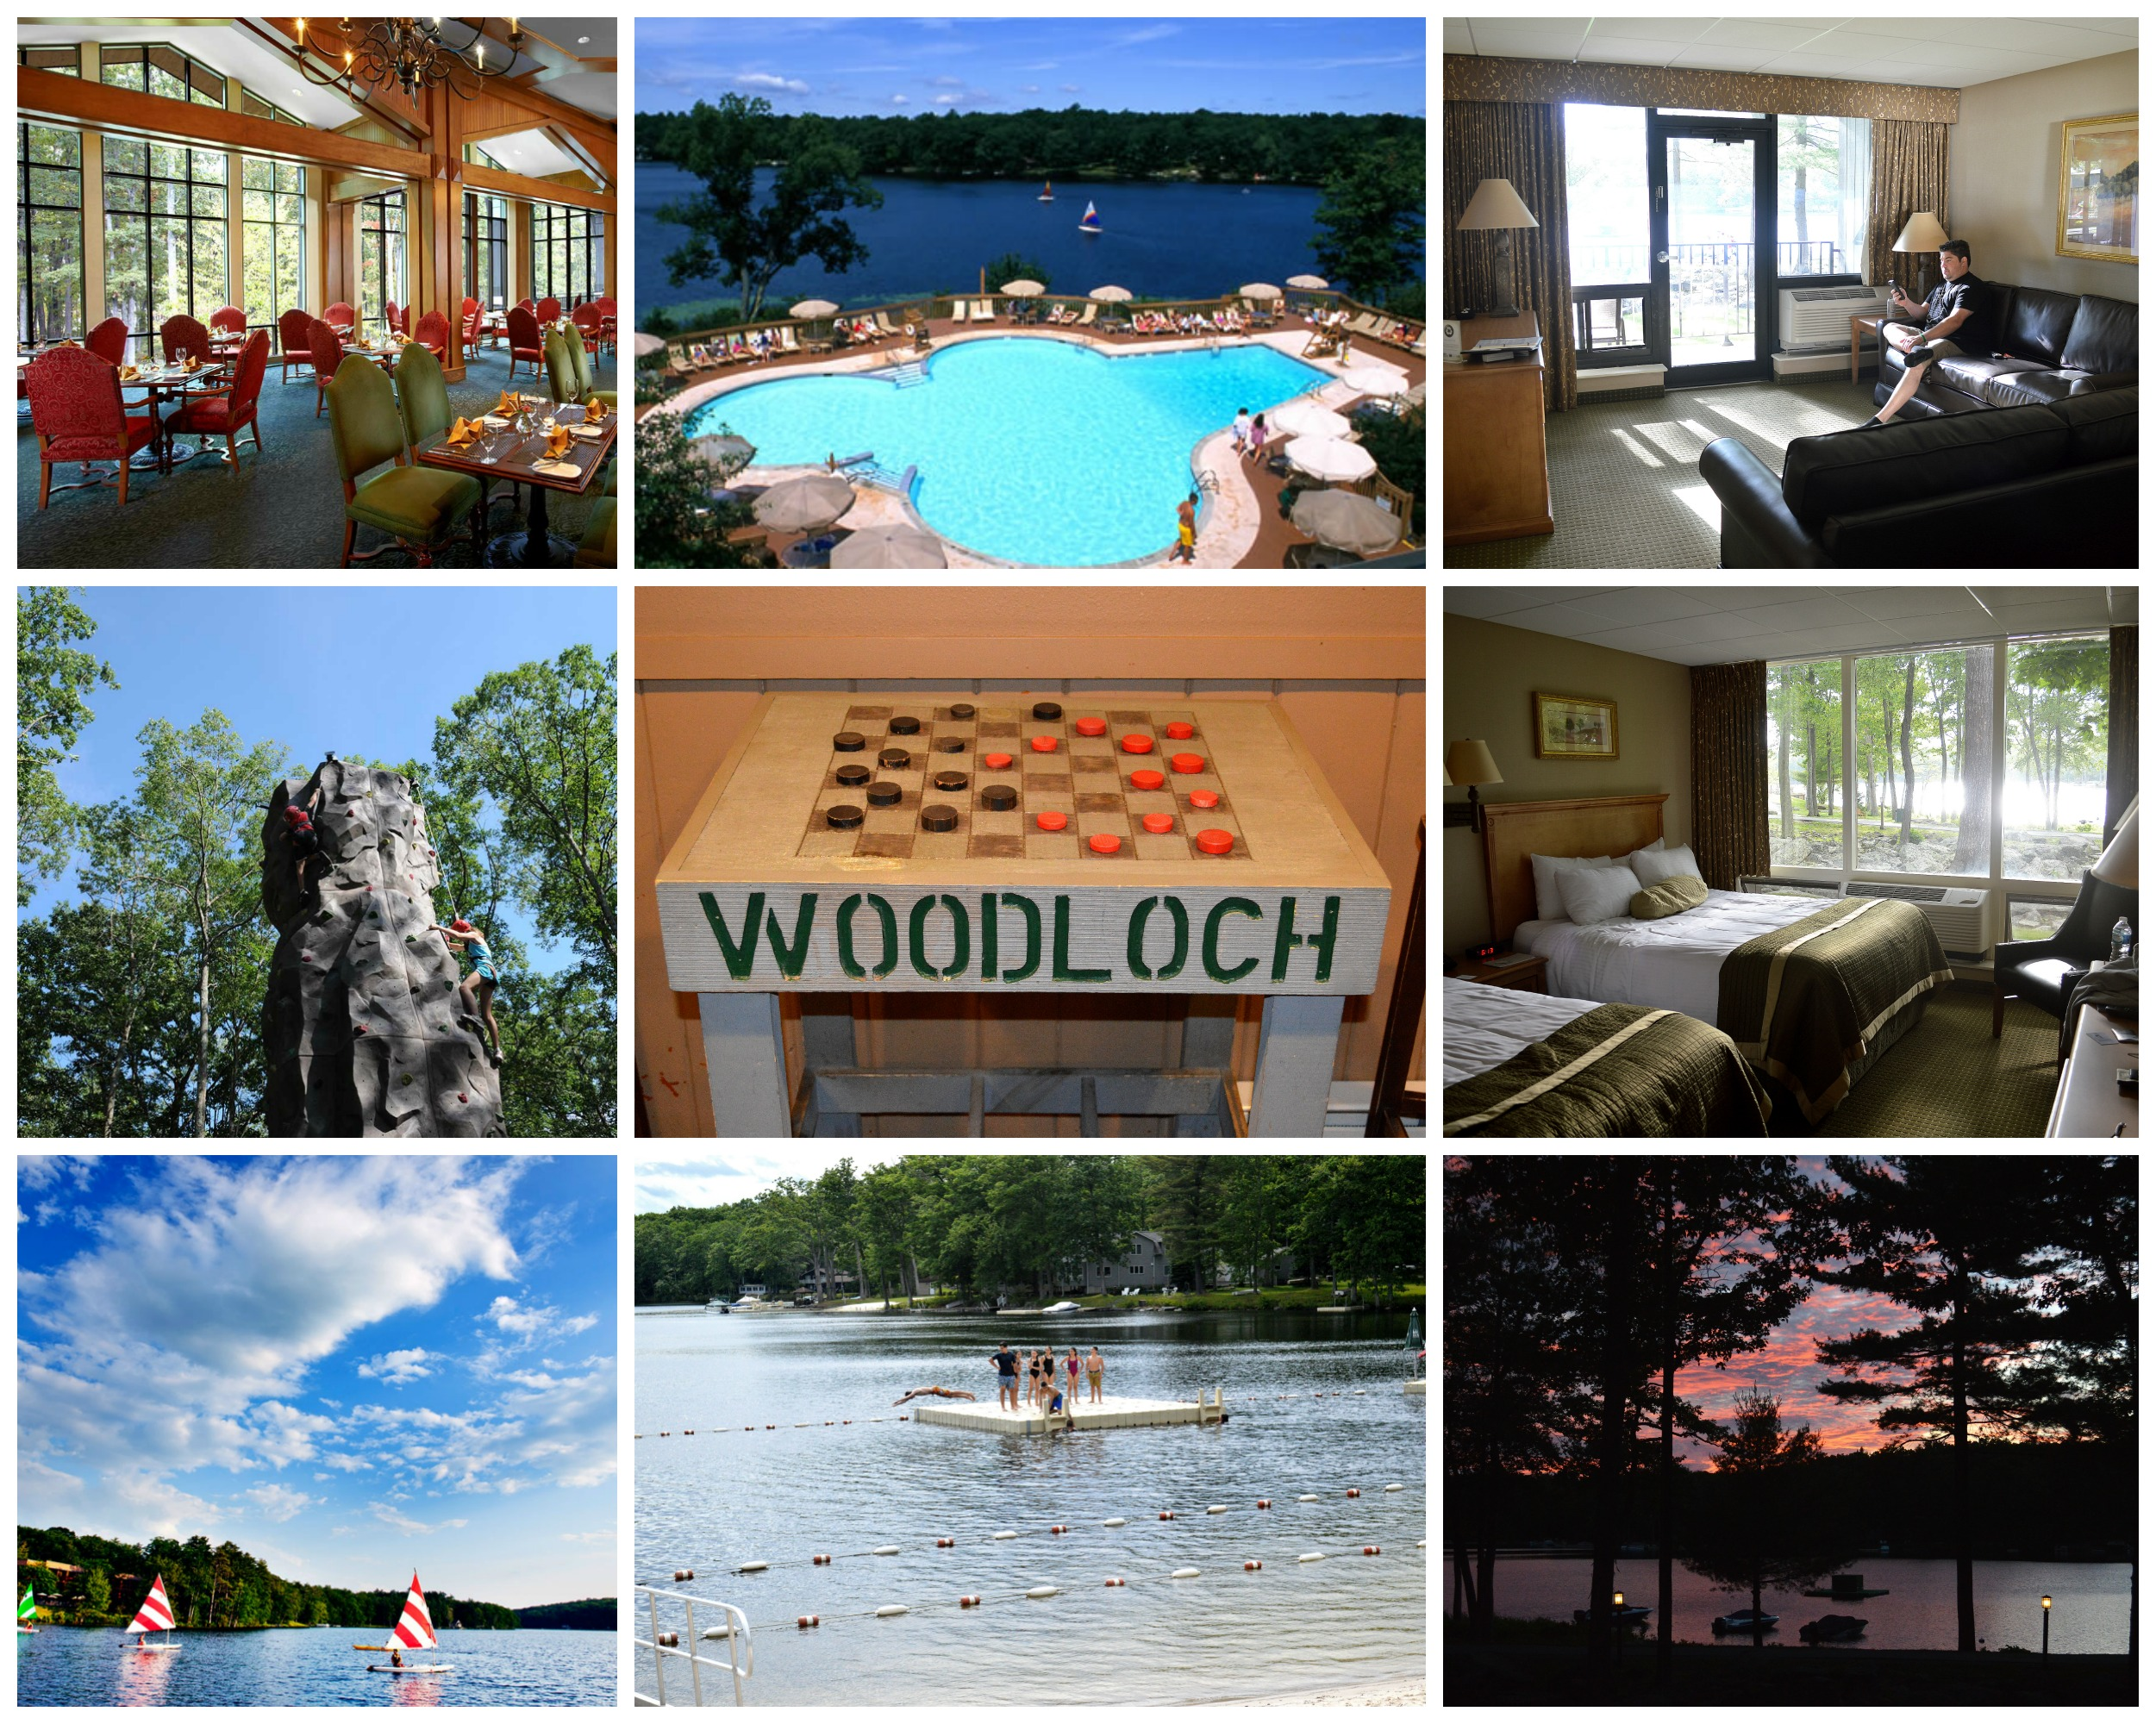 Woodloch Resort in the PA Poconos a full filled Dirty Dancing-esq vacation spot!